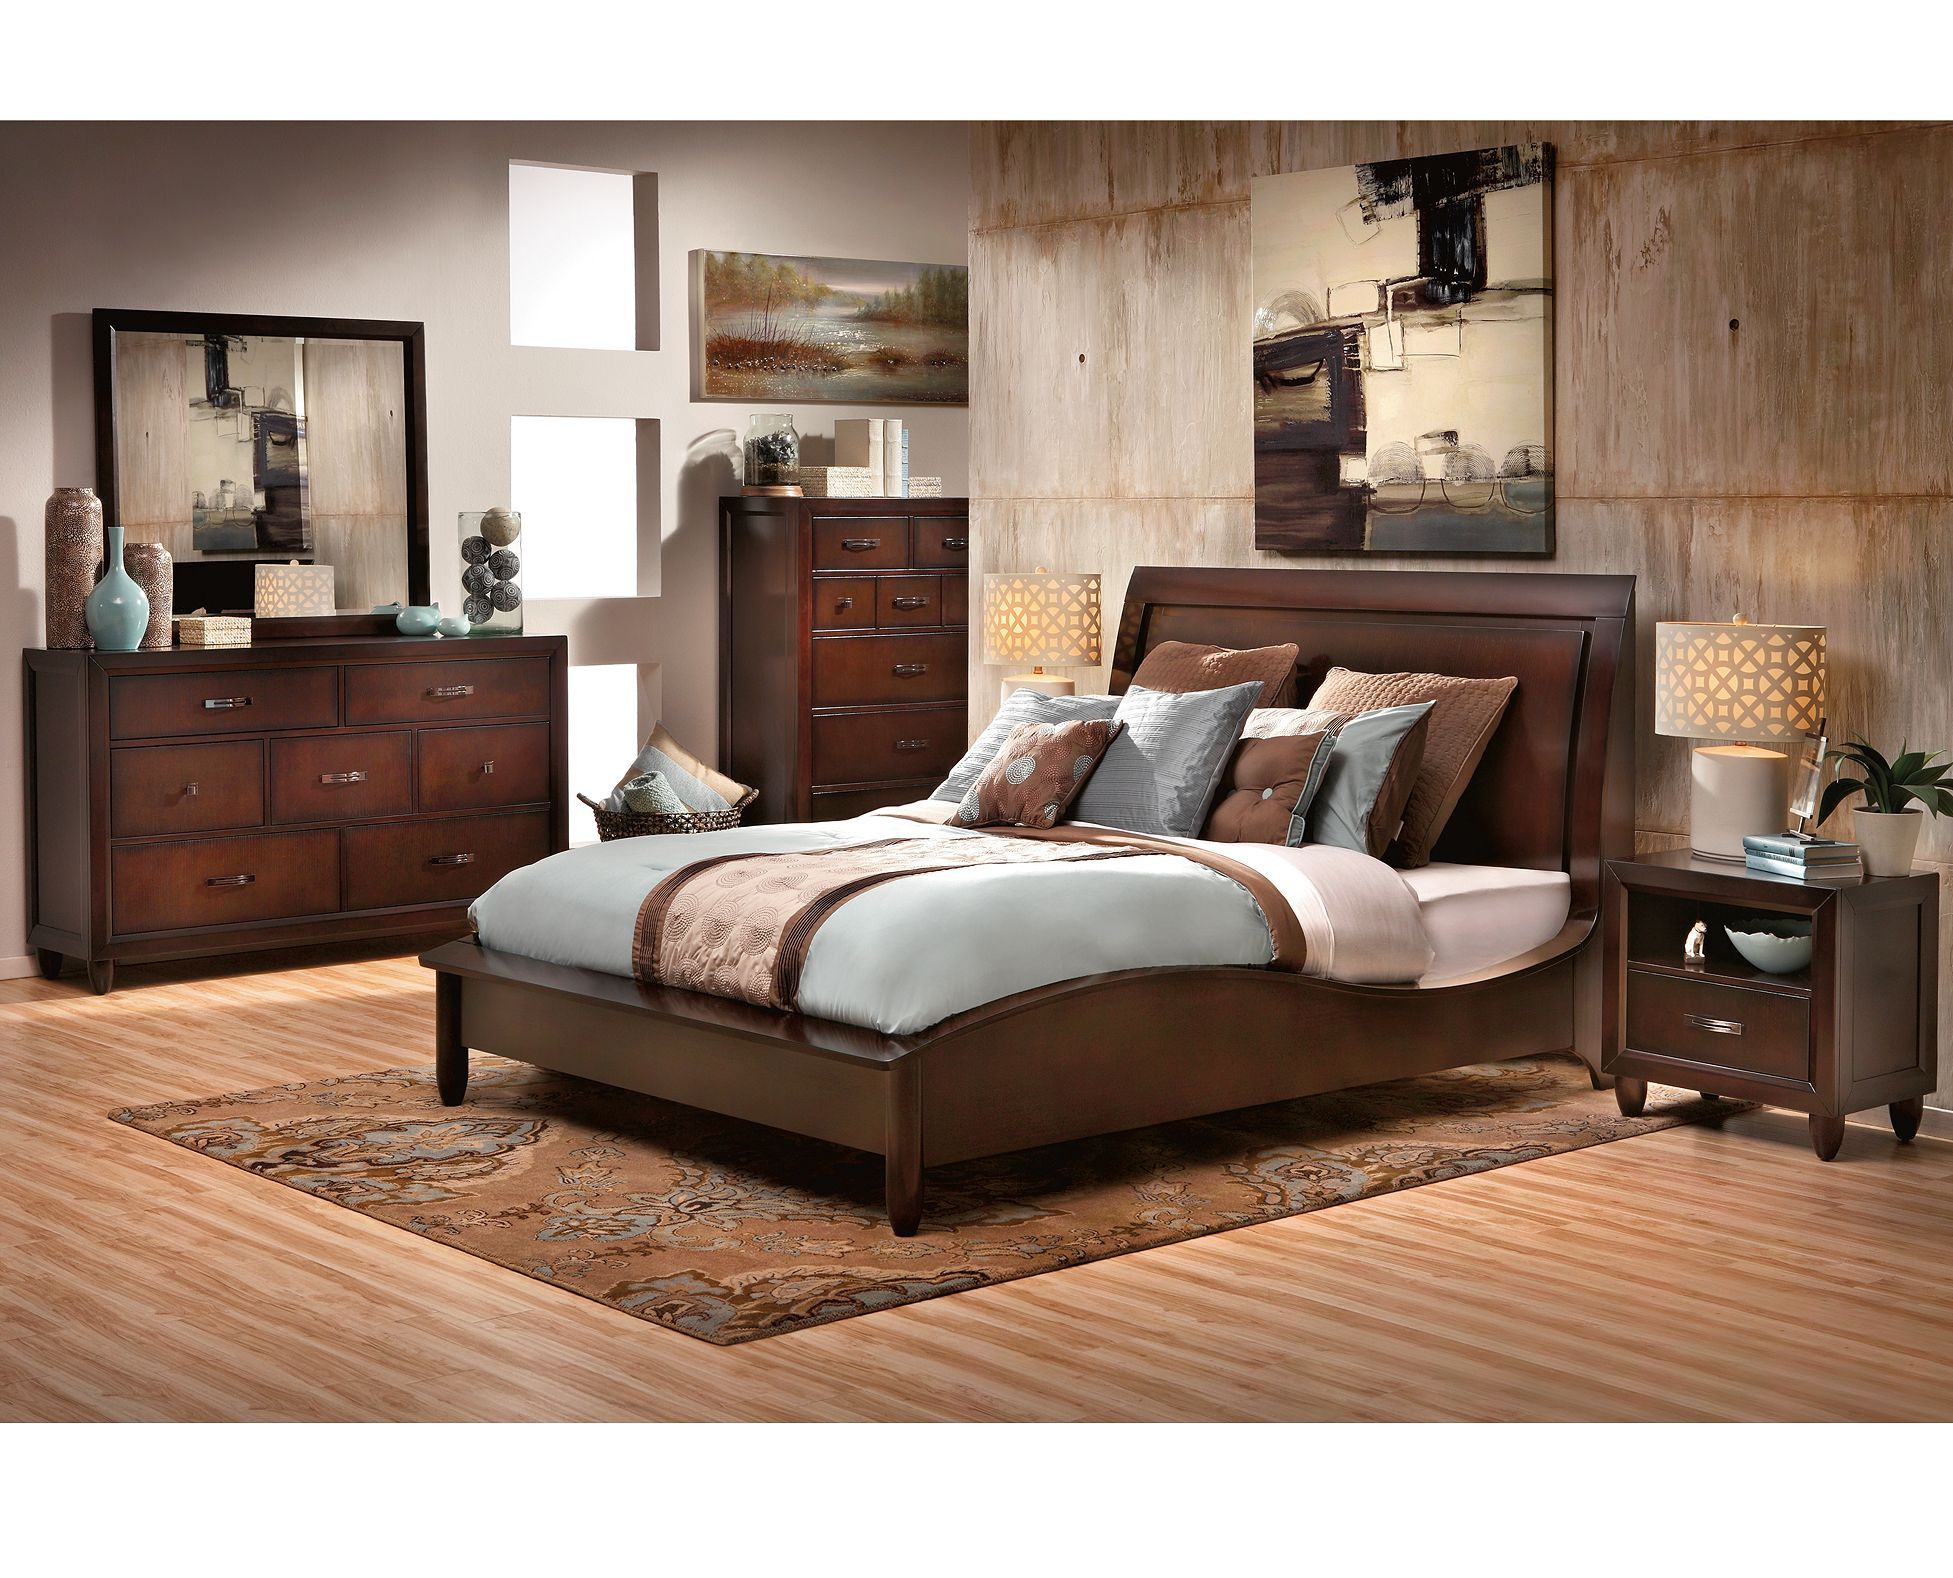 Beds-Malibu Sleigh Bed-Elevate the style of your room  Beautiful